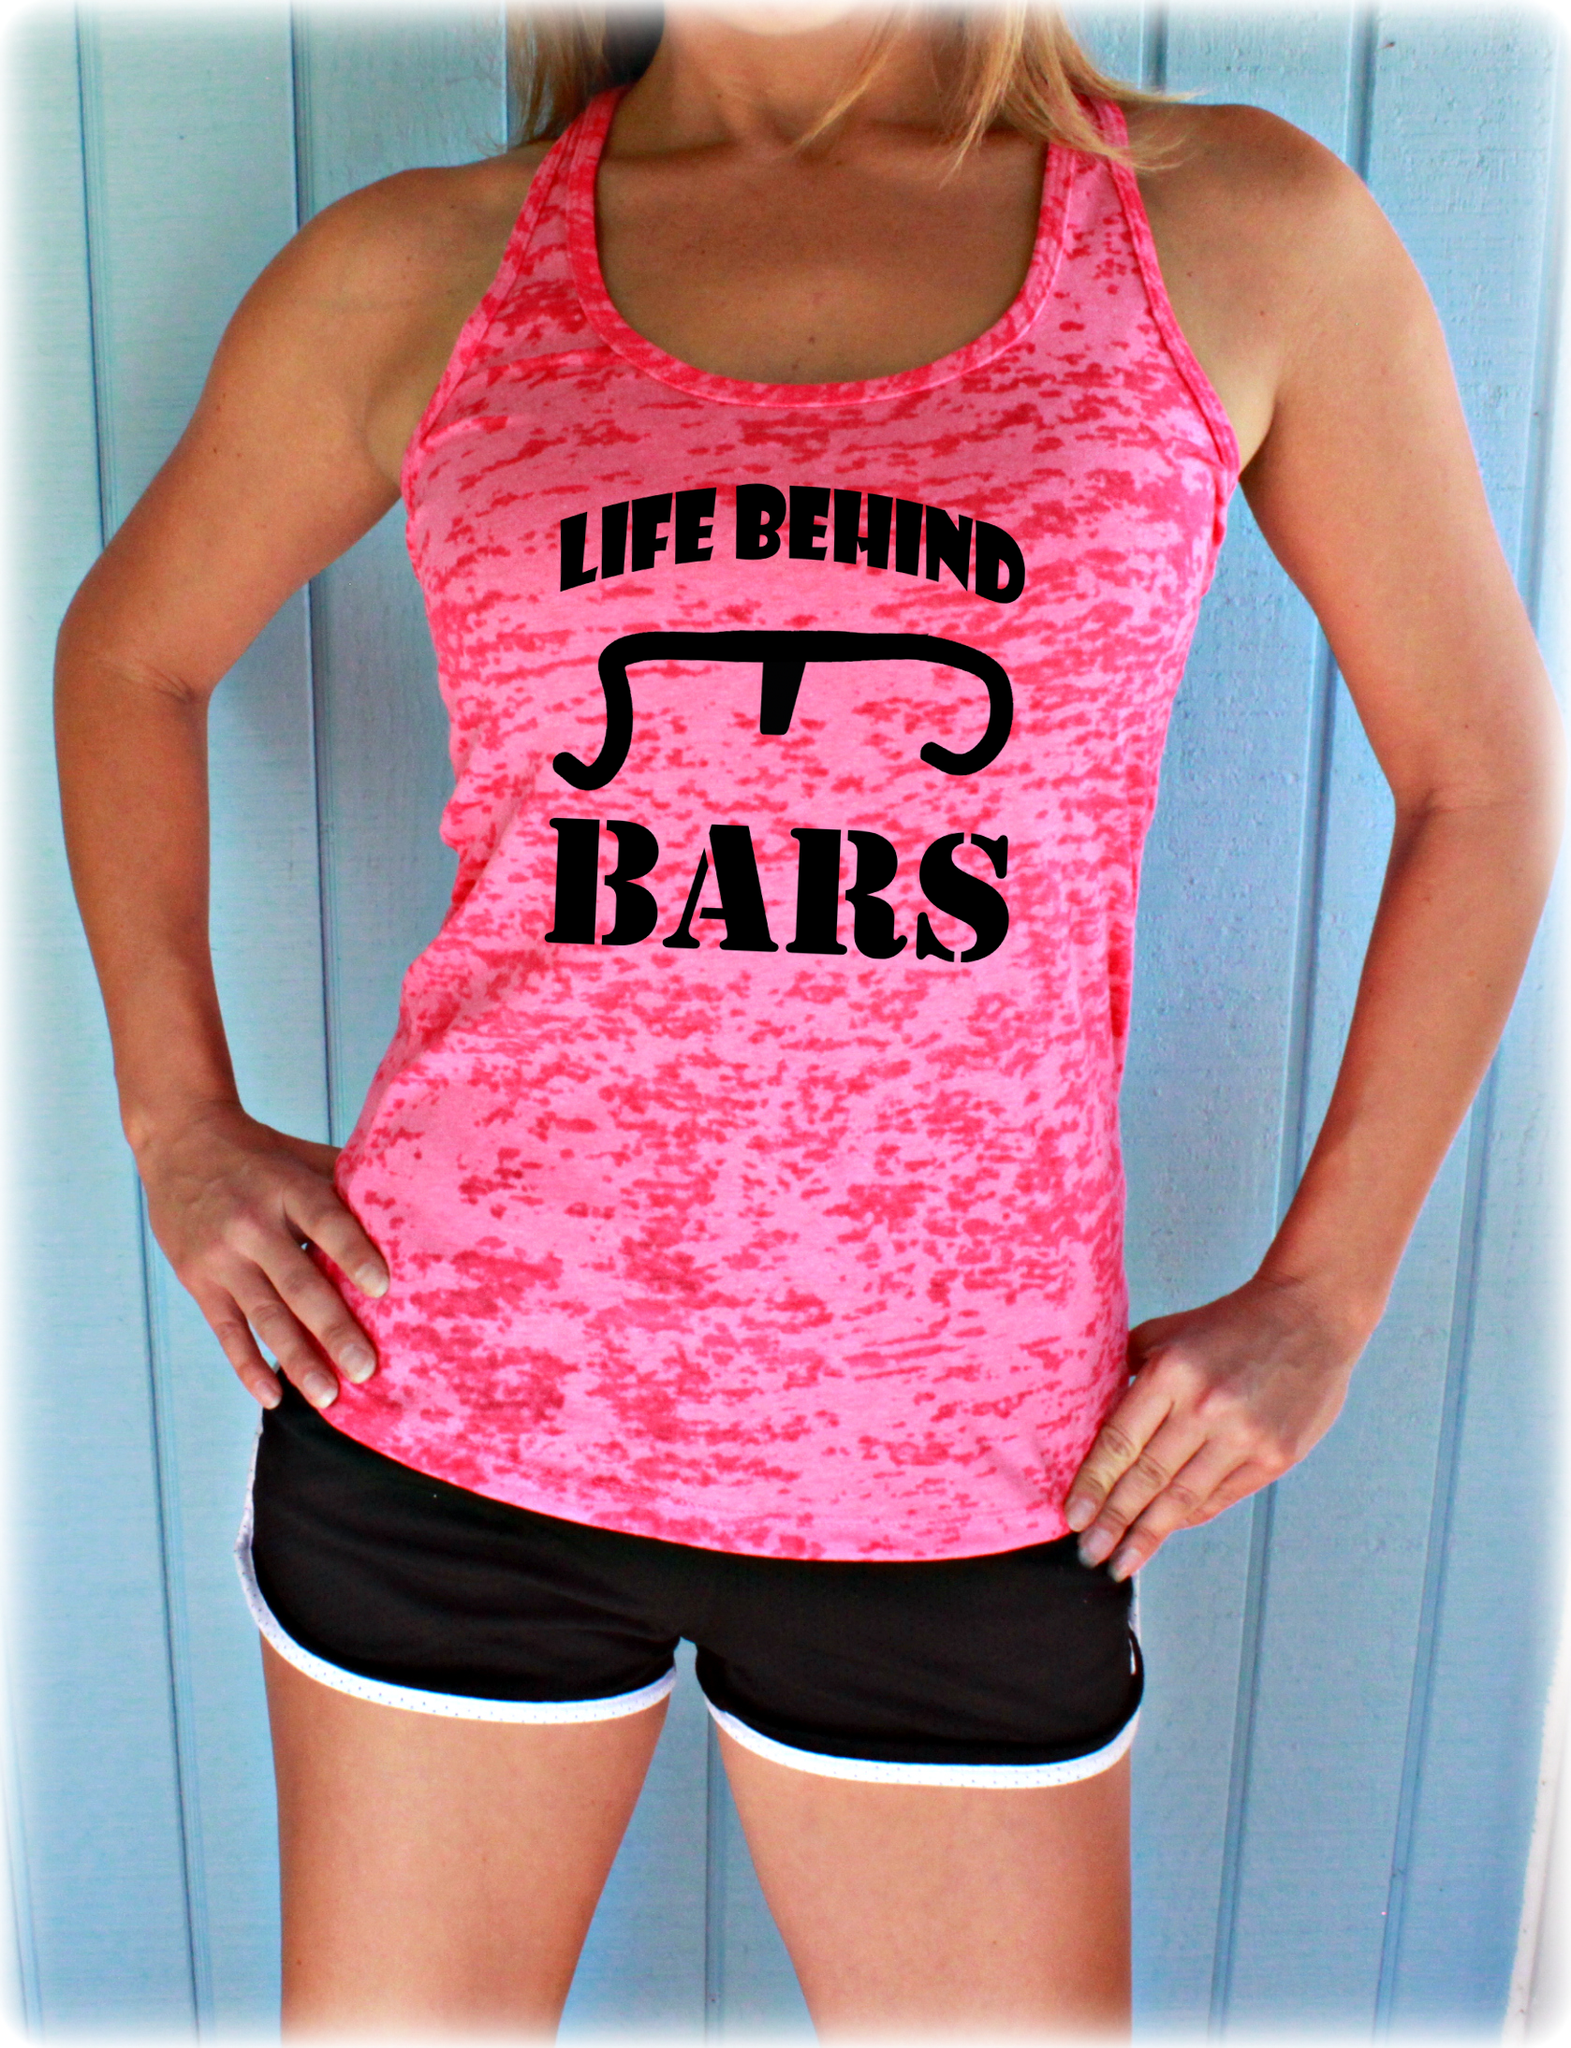 Life Behind Bars Bike Tank Top. Womens Cycling Clothes. Burnout Bicycle Tank.